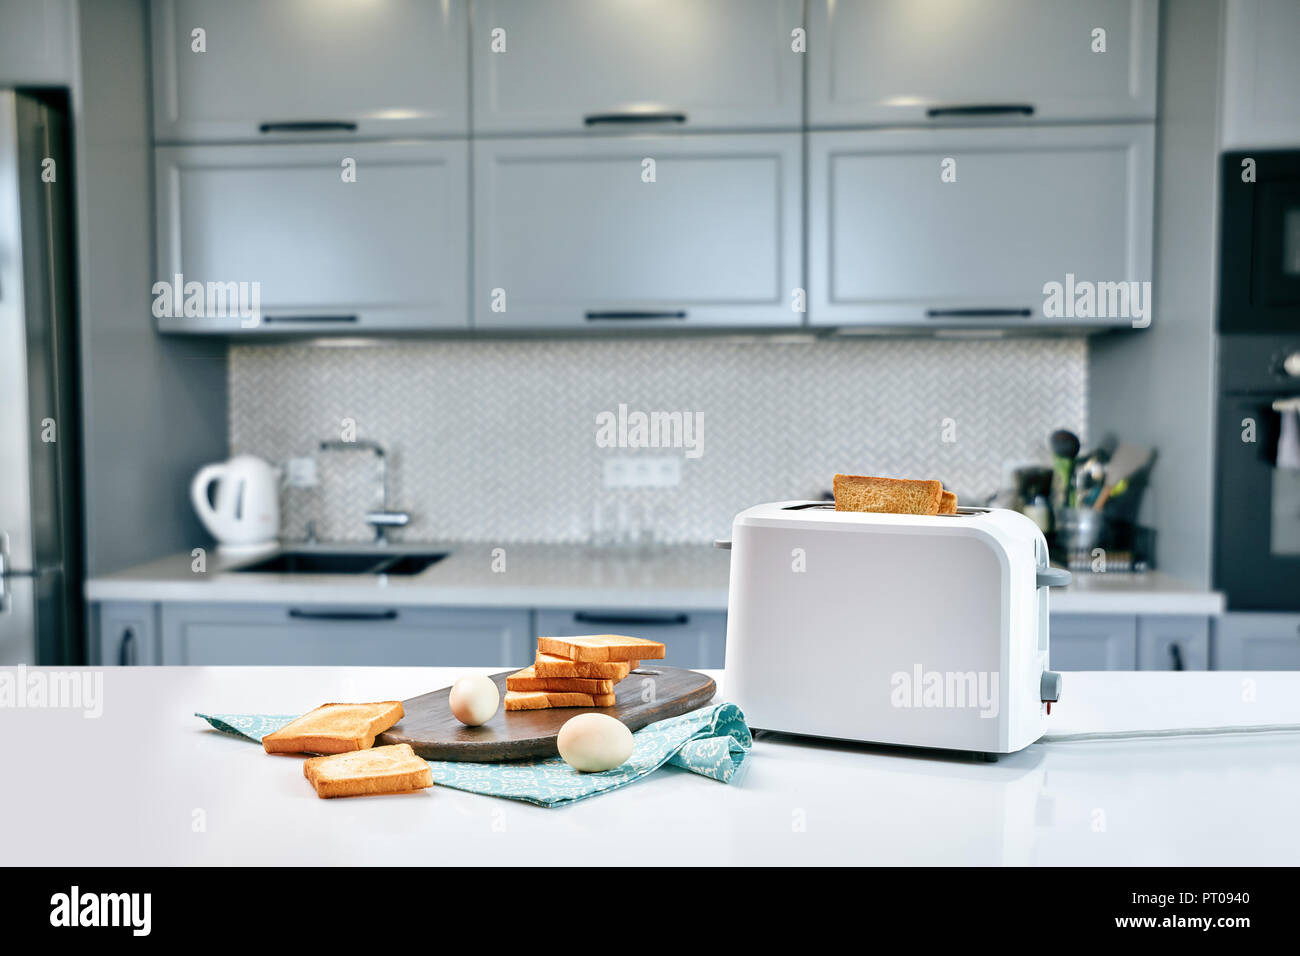 Bread In A Toaster Stock Photos & Bread In A Toaster Stock Images ...